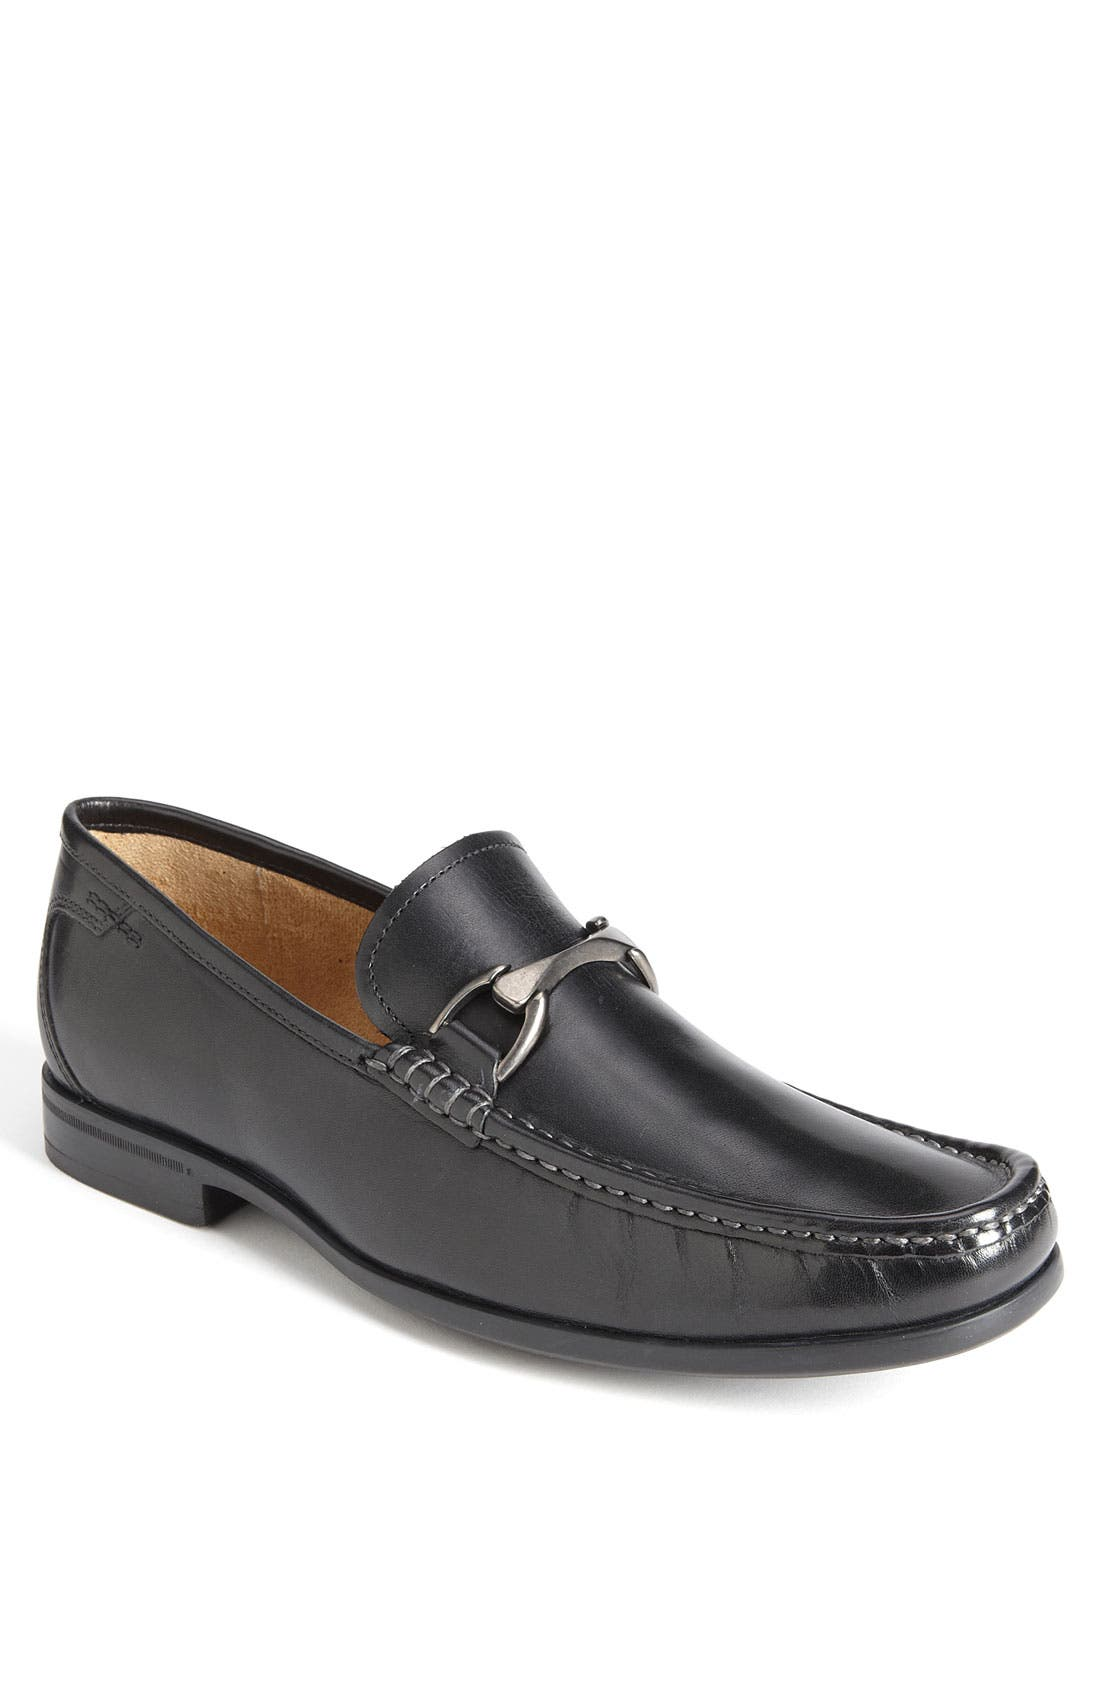 Alternate Image 1 Selected - Florsheim 'Heavy Metal' Loafer